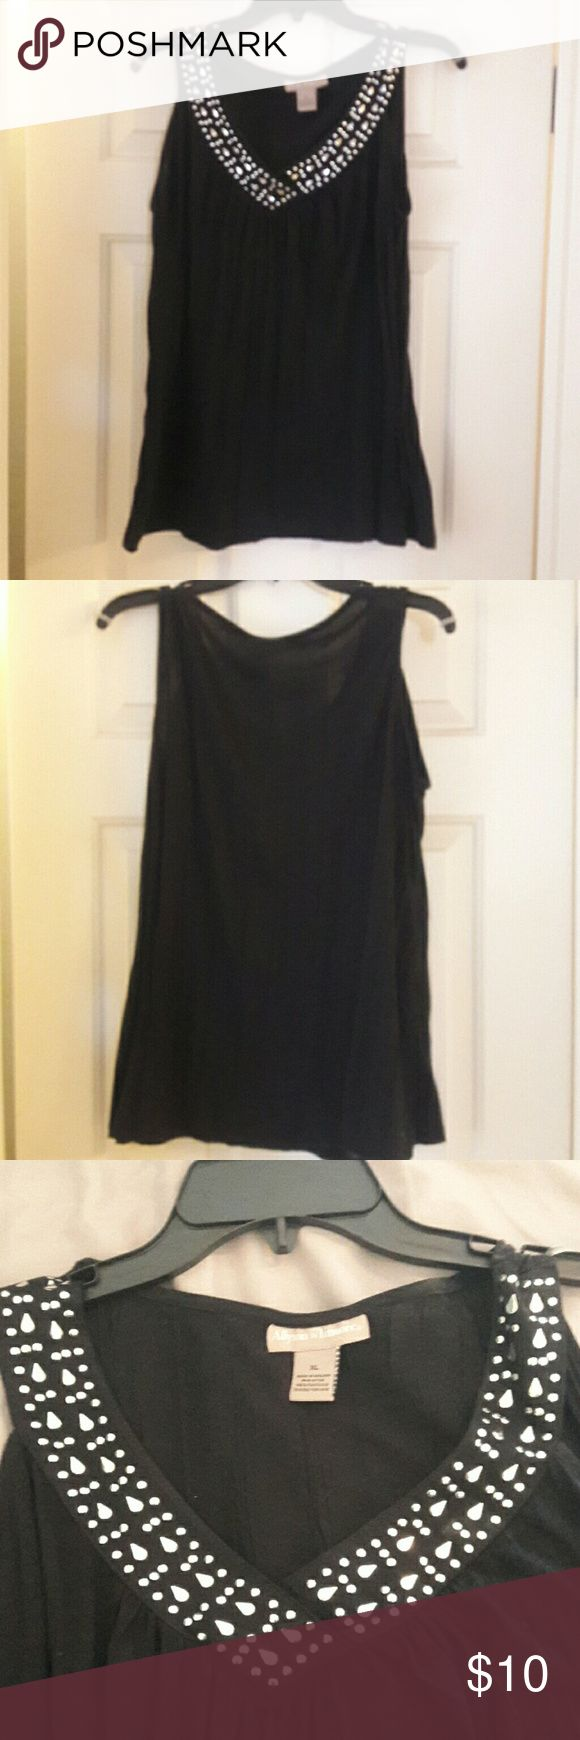 Womens top Black women's tank top with silver beading on neck line. Worn once. In great condition. Smoke free, pet free home Allyson Whitmore Tops Tank Tops